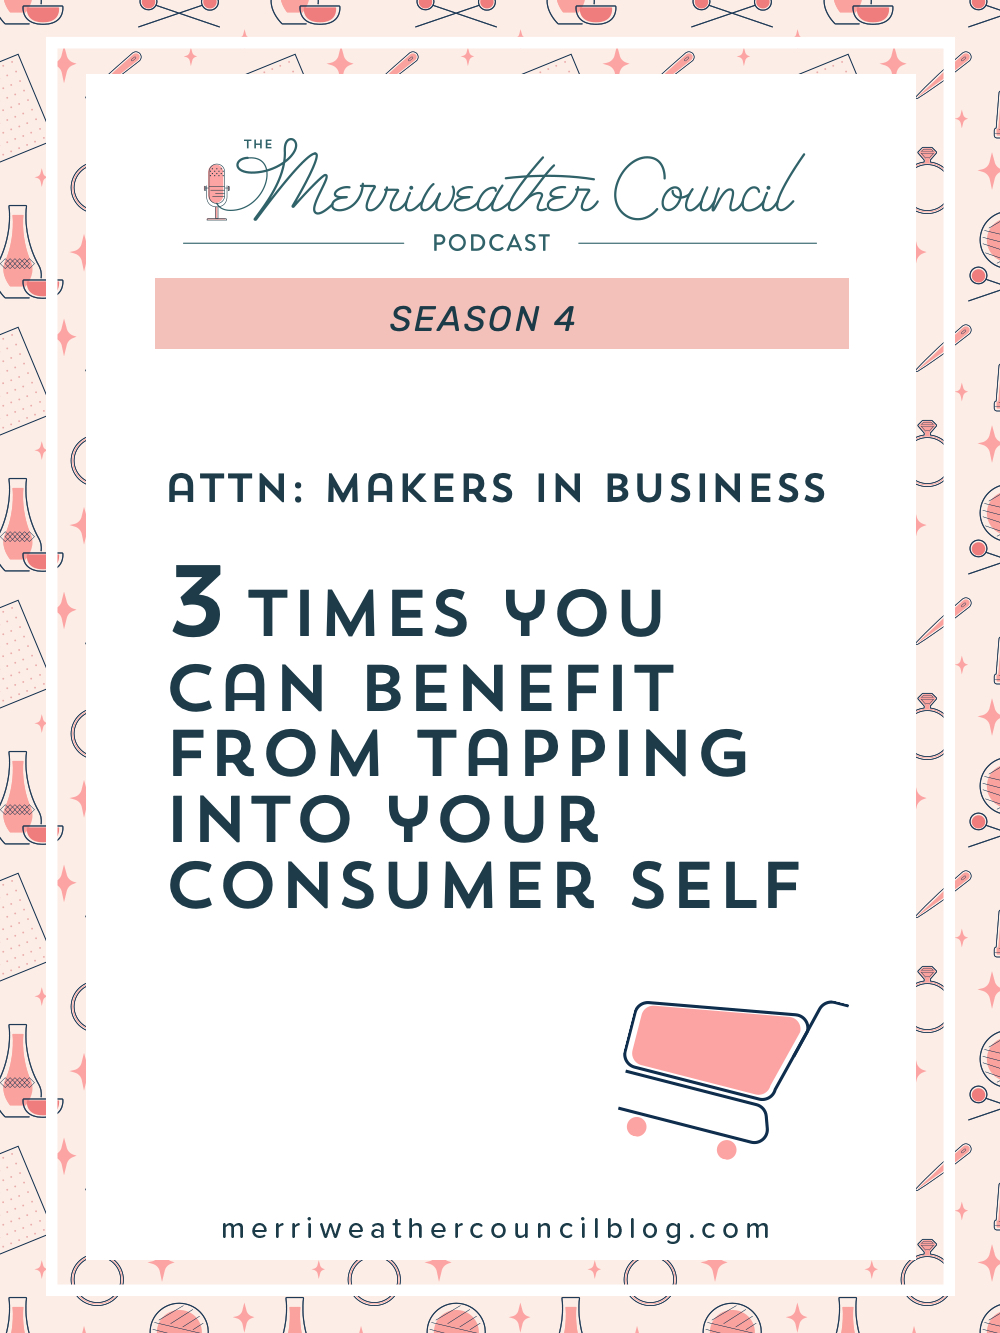 As business owners, we are constantly seeking out more information and training, but sometimes the consumer self-concept is all we need! | The Merriweather Council Podcast